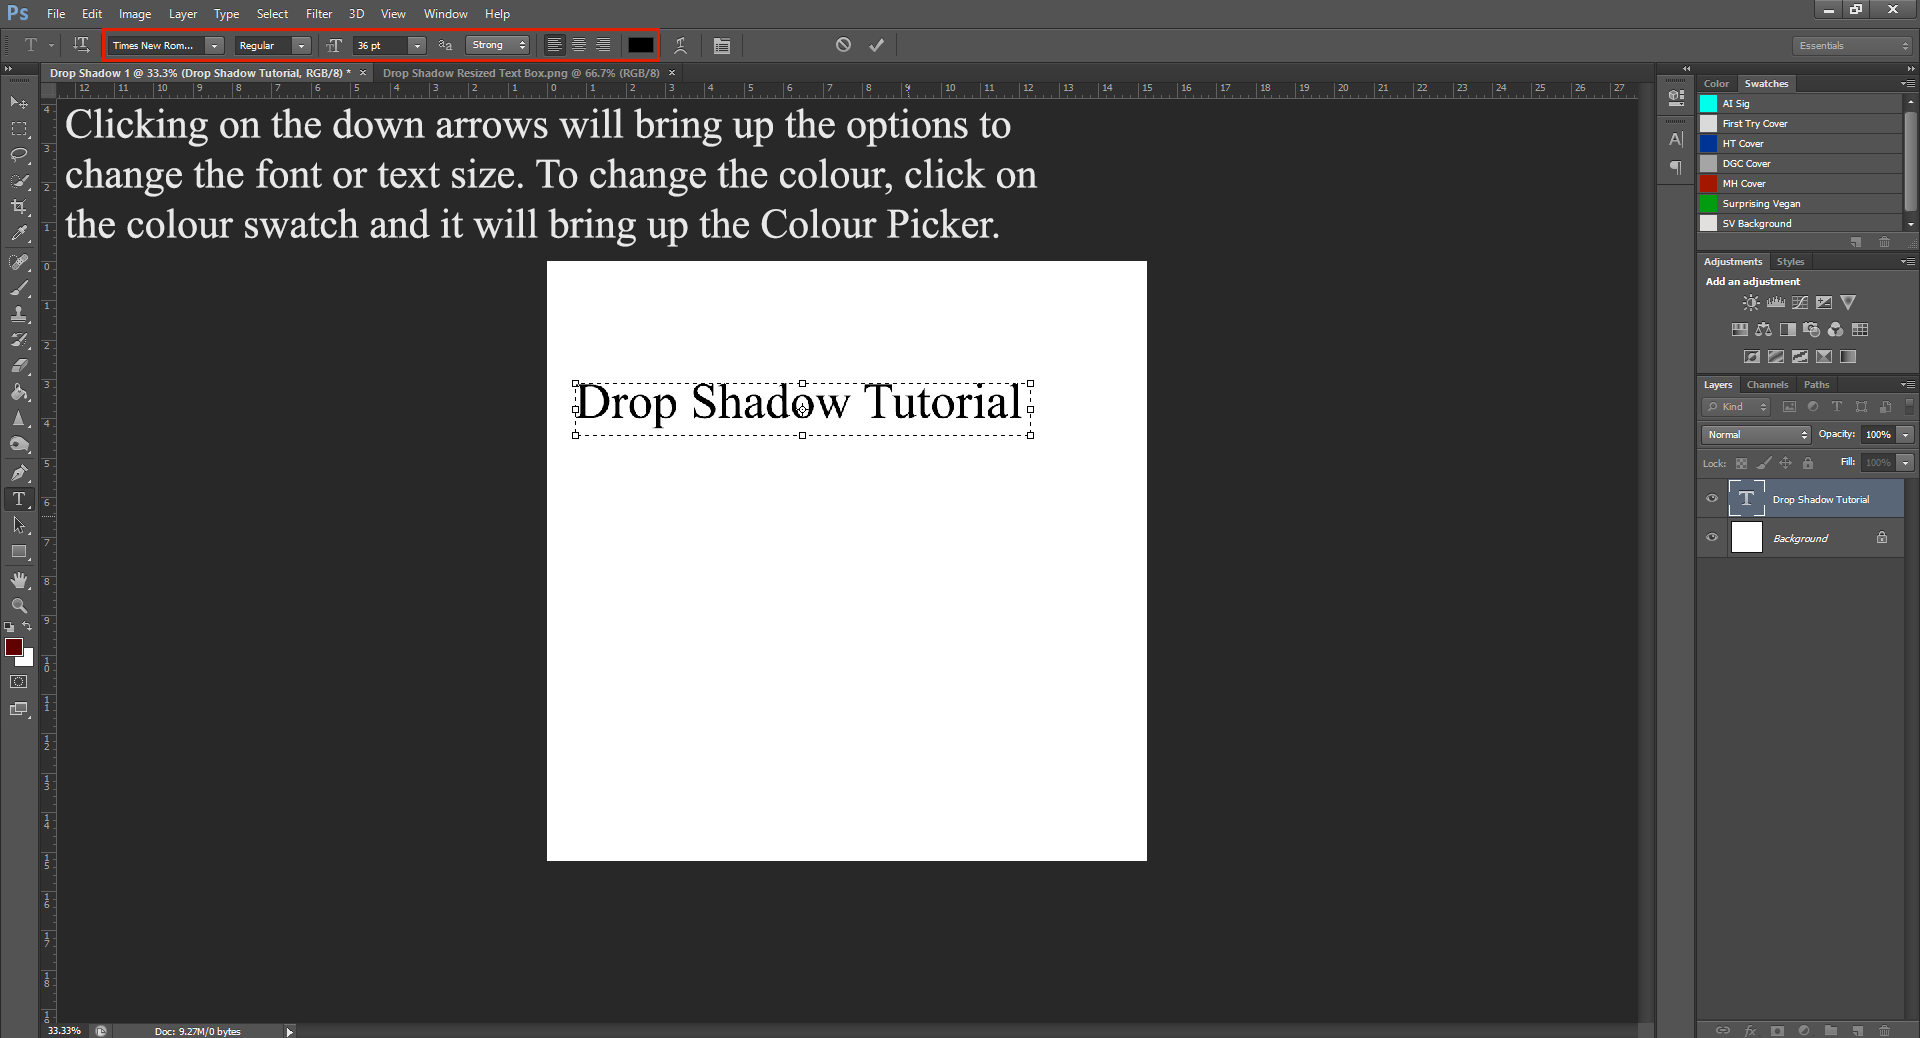 AterImber.com - Writing - Writing Tips - PHSH Tutorial - Drop Shadow - Font, Size and Colour Options